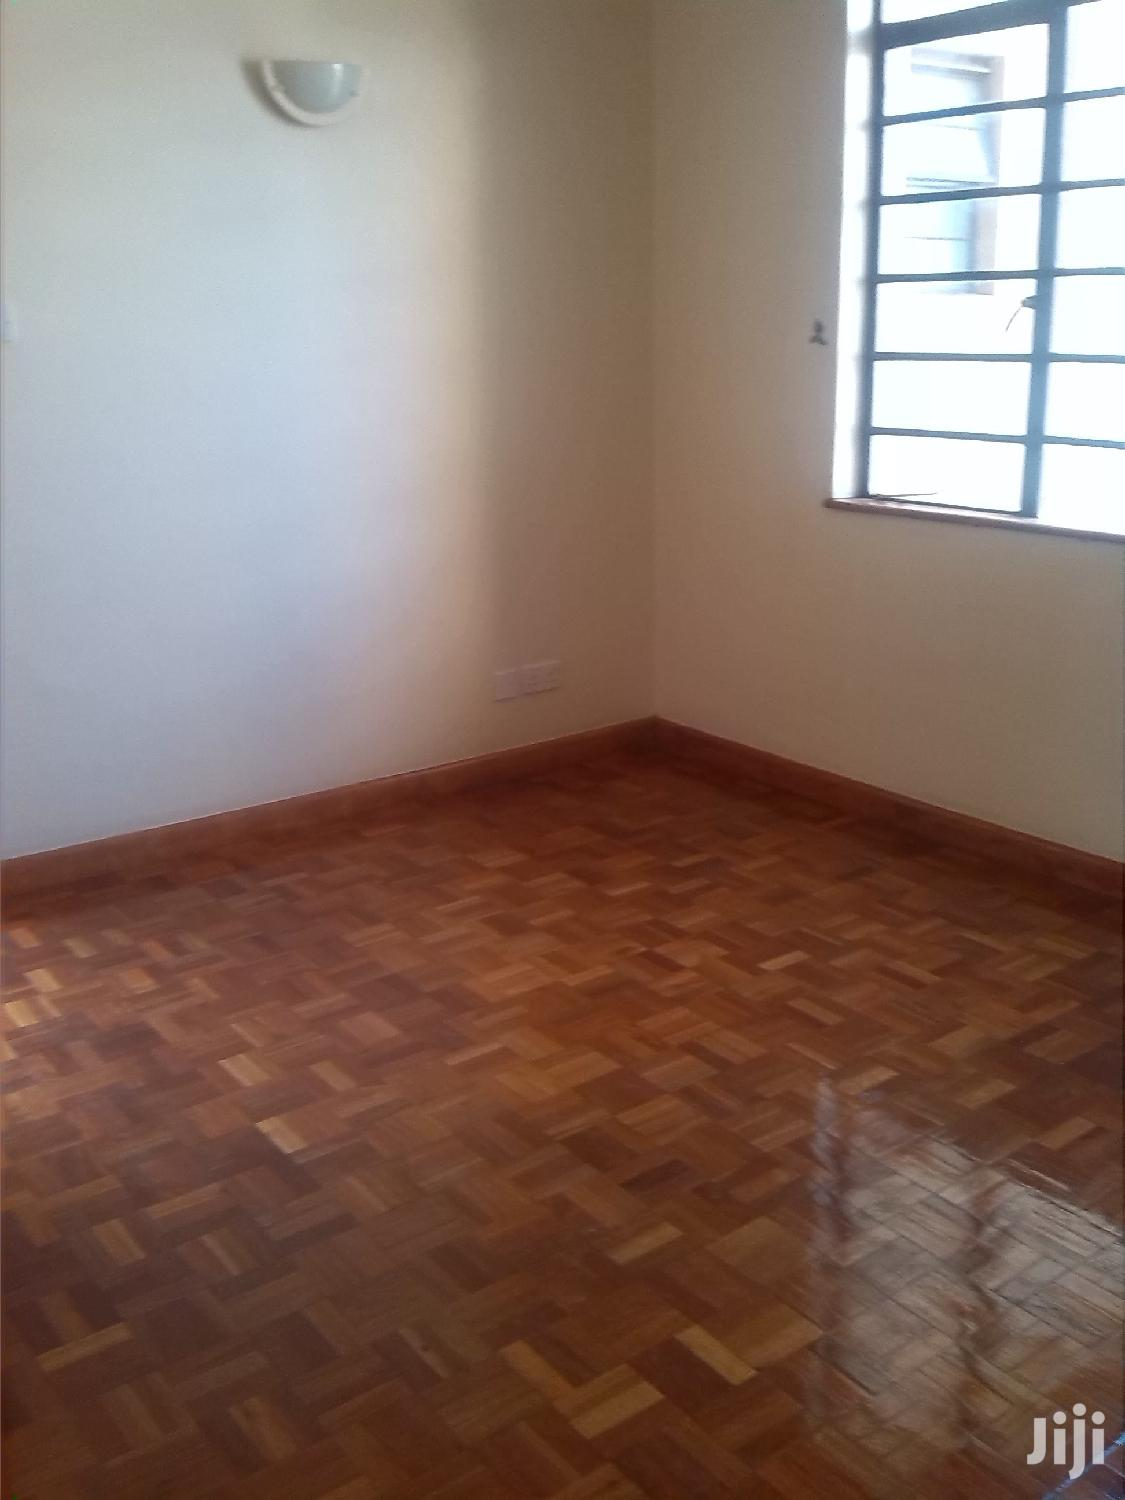 Property World,3brs+Dsq All Ensuite,Lift and Very Secure | Houses & Apartments For Rent for sale in Kilimani, Nairobi, Kenya